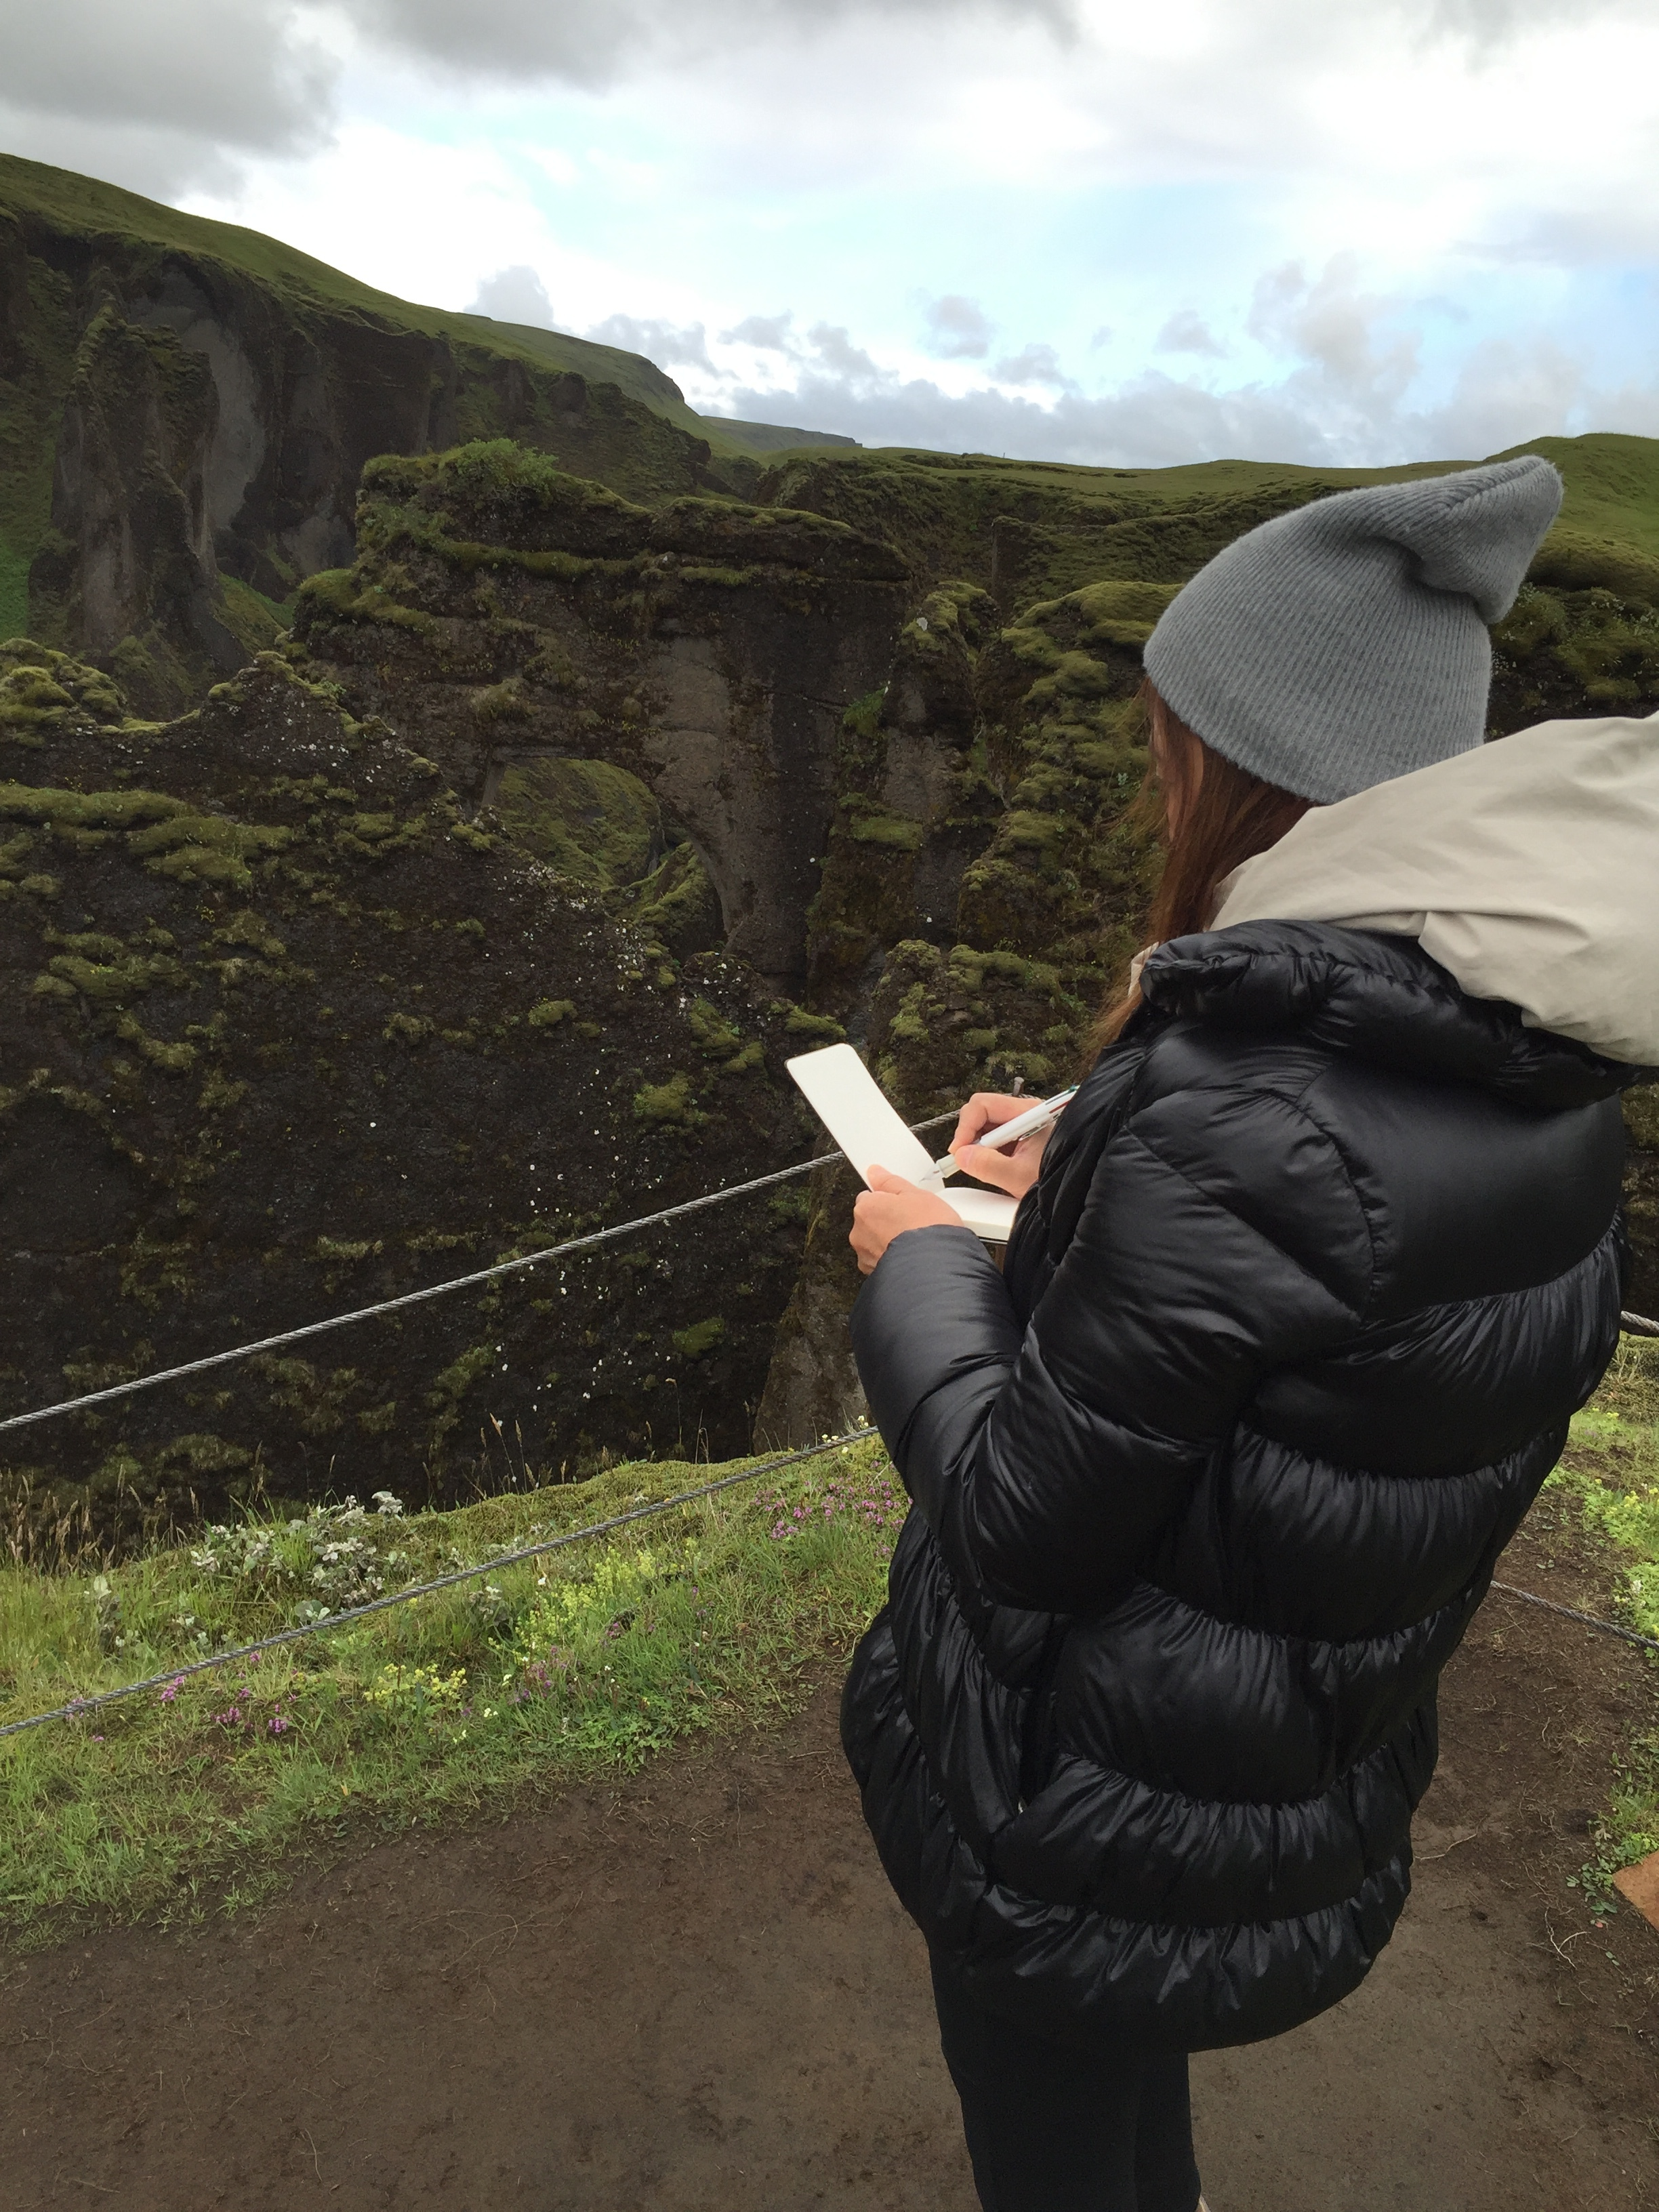 Artist drawing at Fjadrargljufur Canyon, Iceland